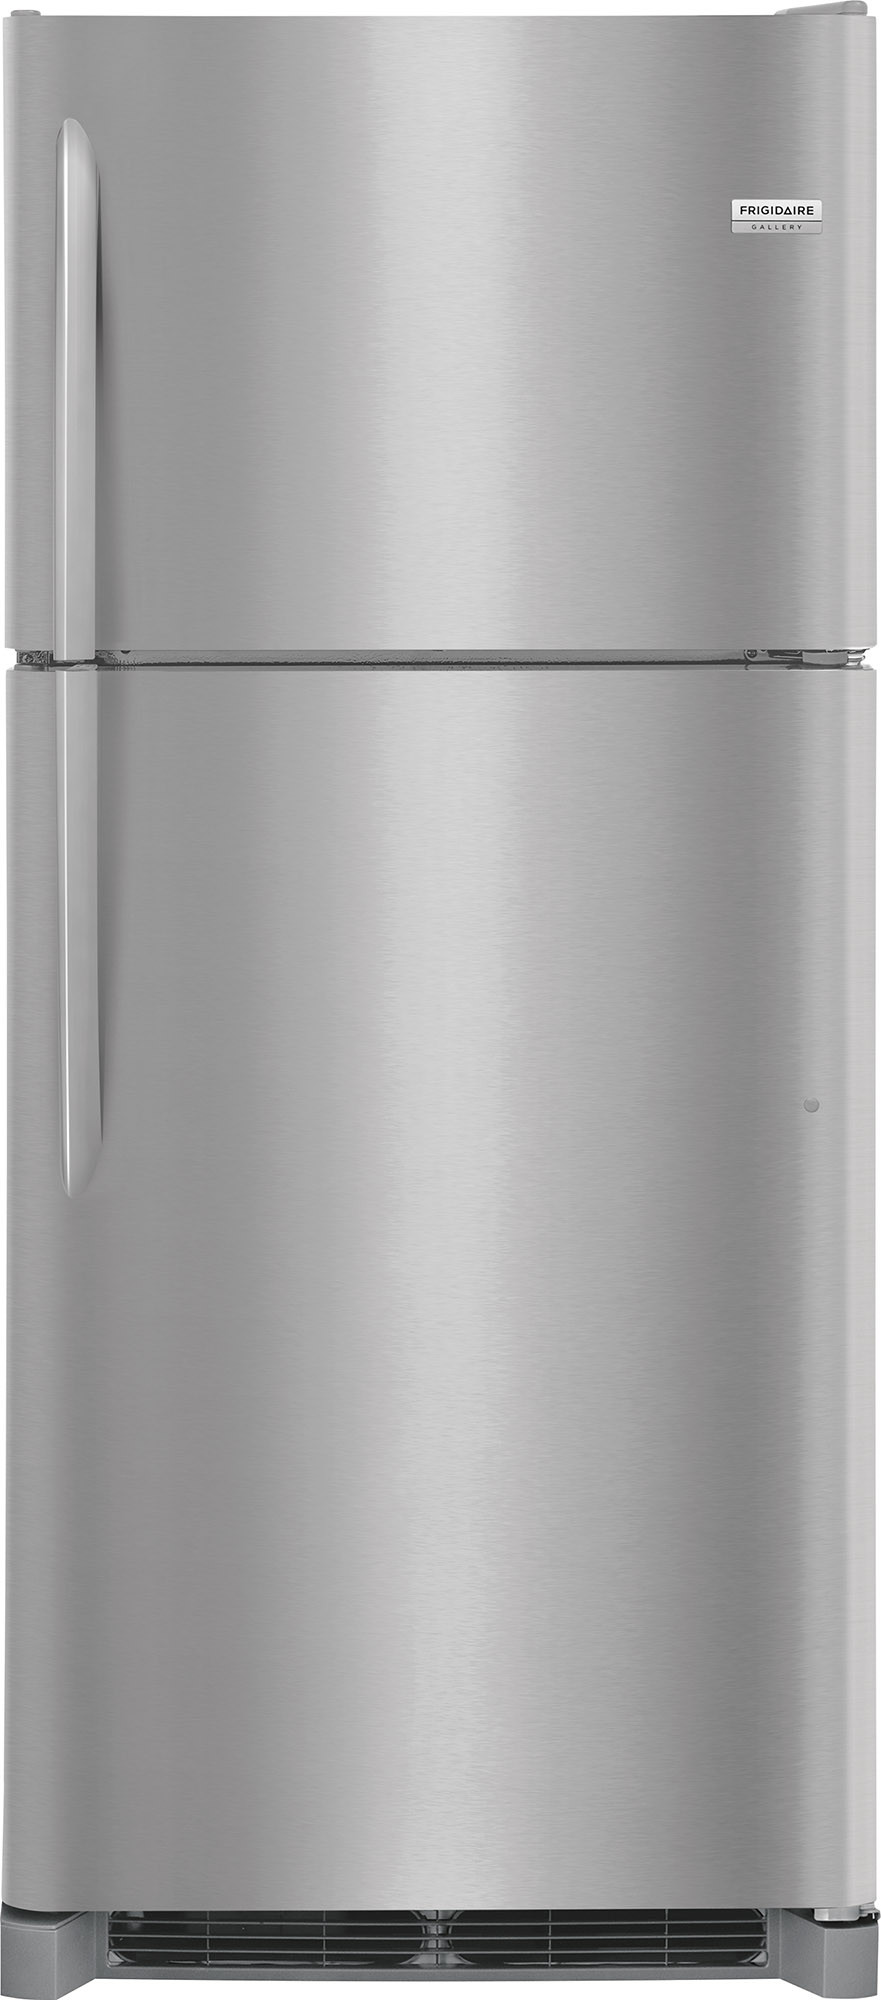 Frigidaire Fgtr2042tf 30 Inch Freestanding Top Mount